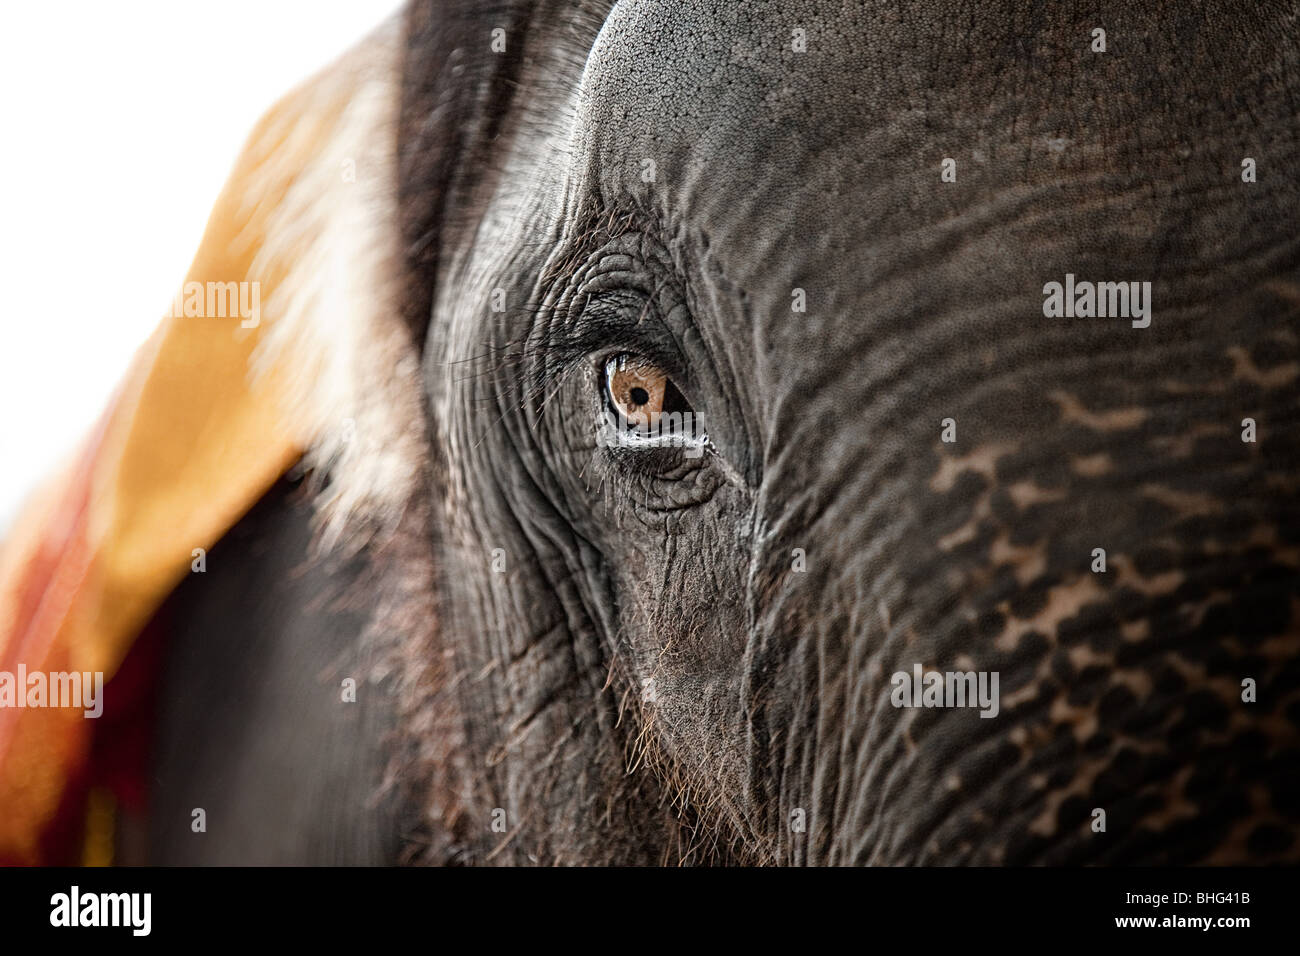 Close up of the eye of an elephant - Stock Image